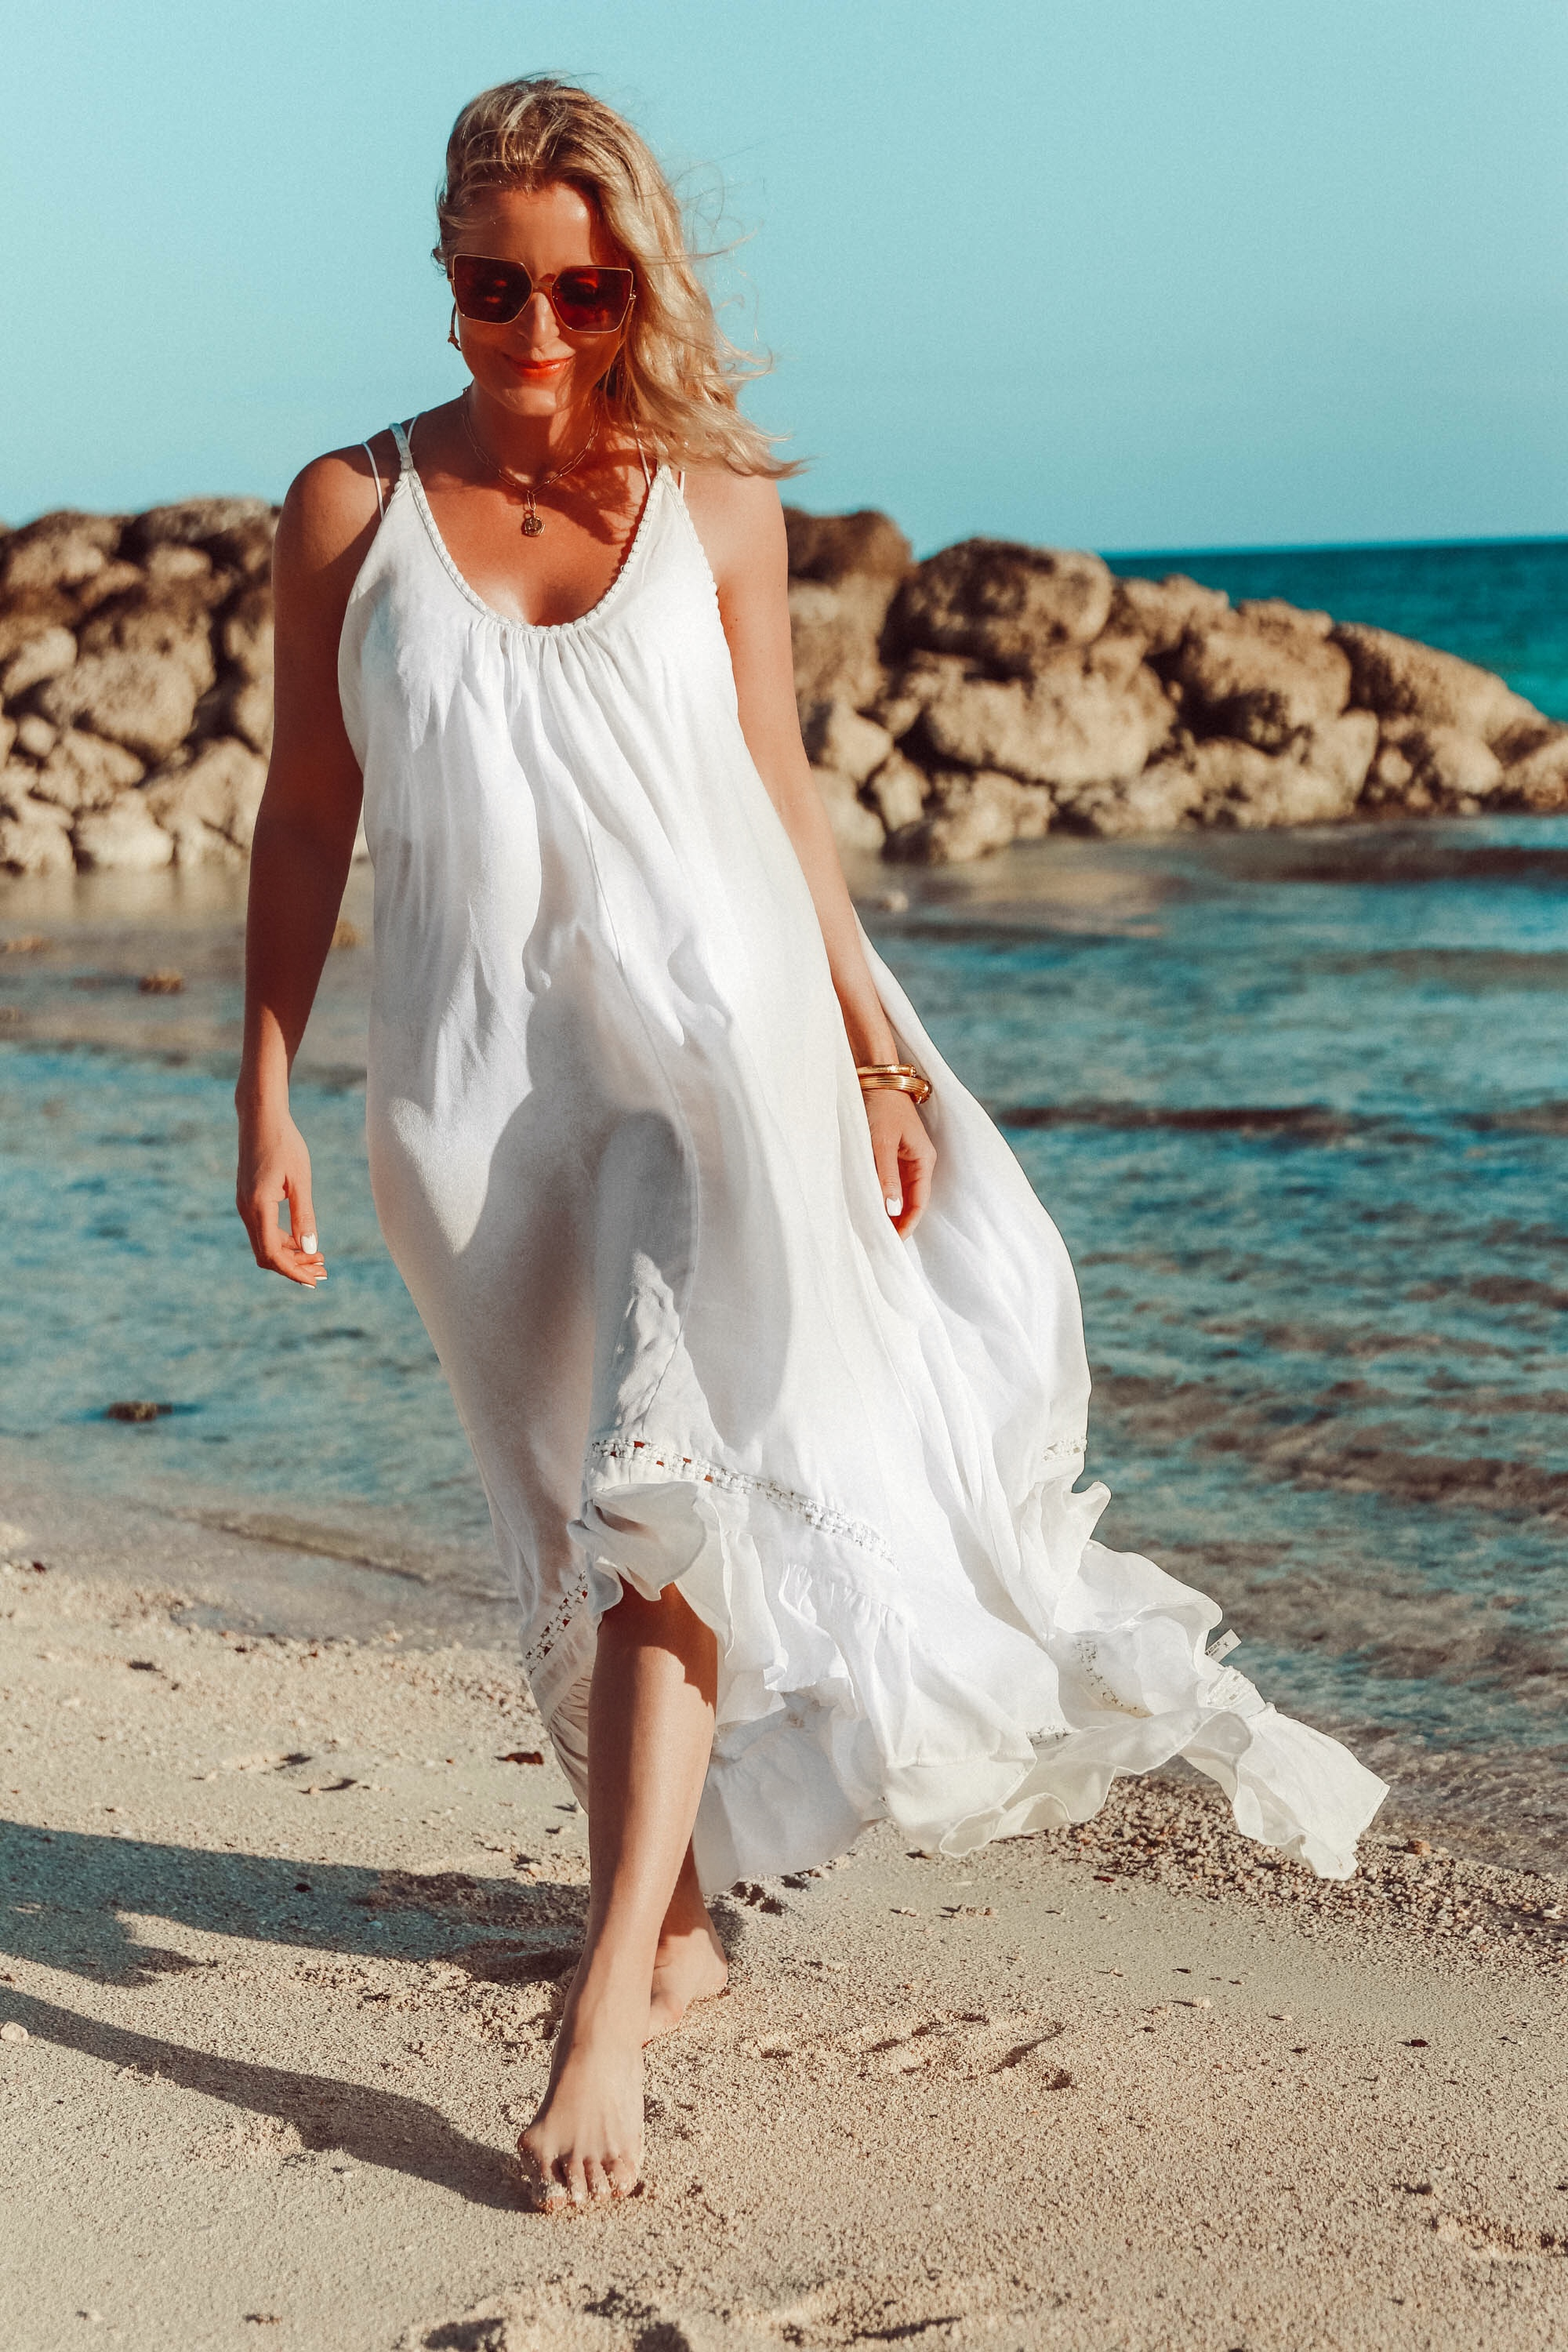 white Free People maxi swimsuit bathing suit coverup outfit on the beach